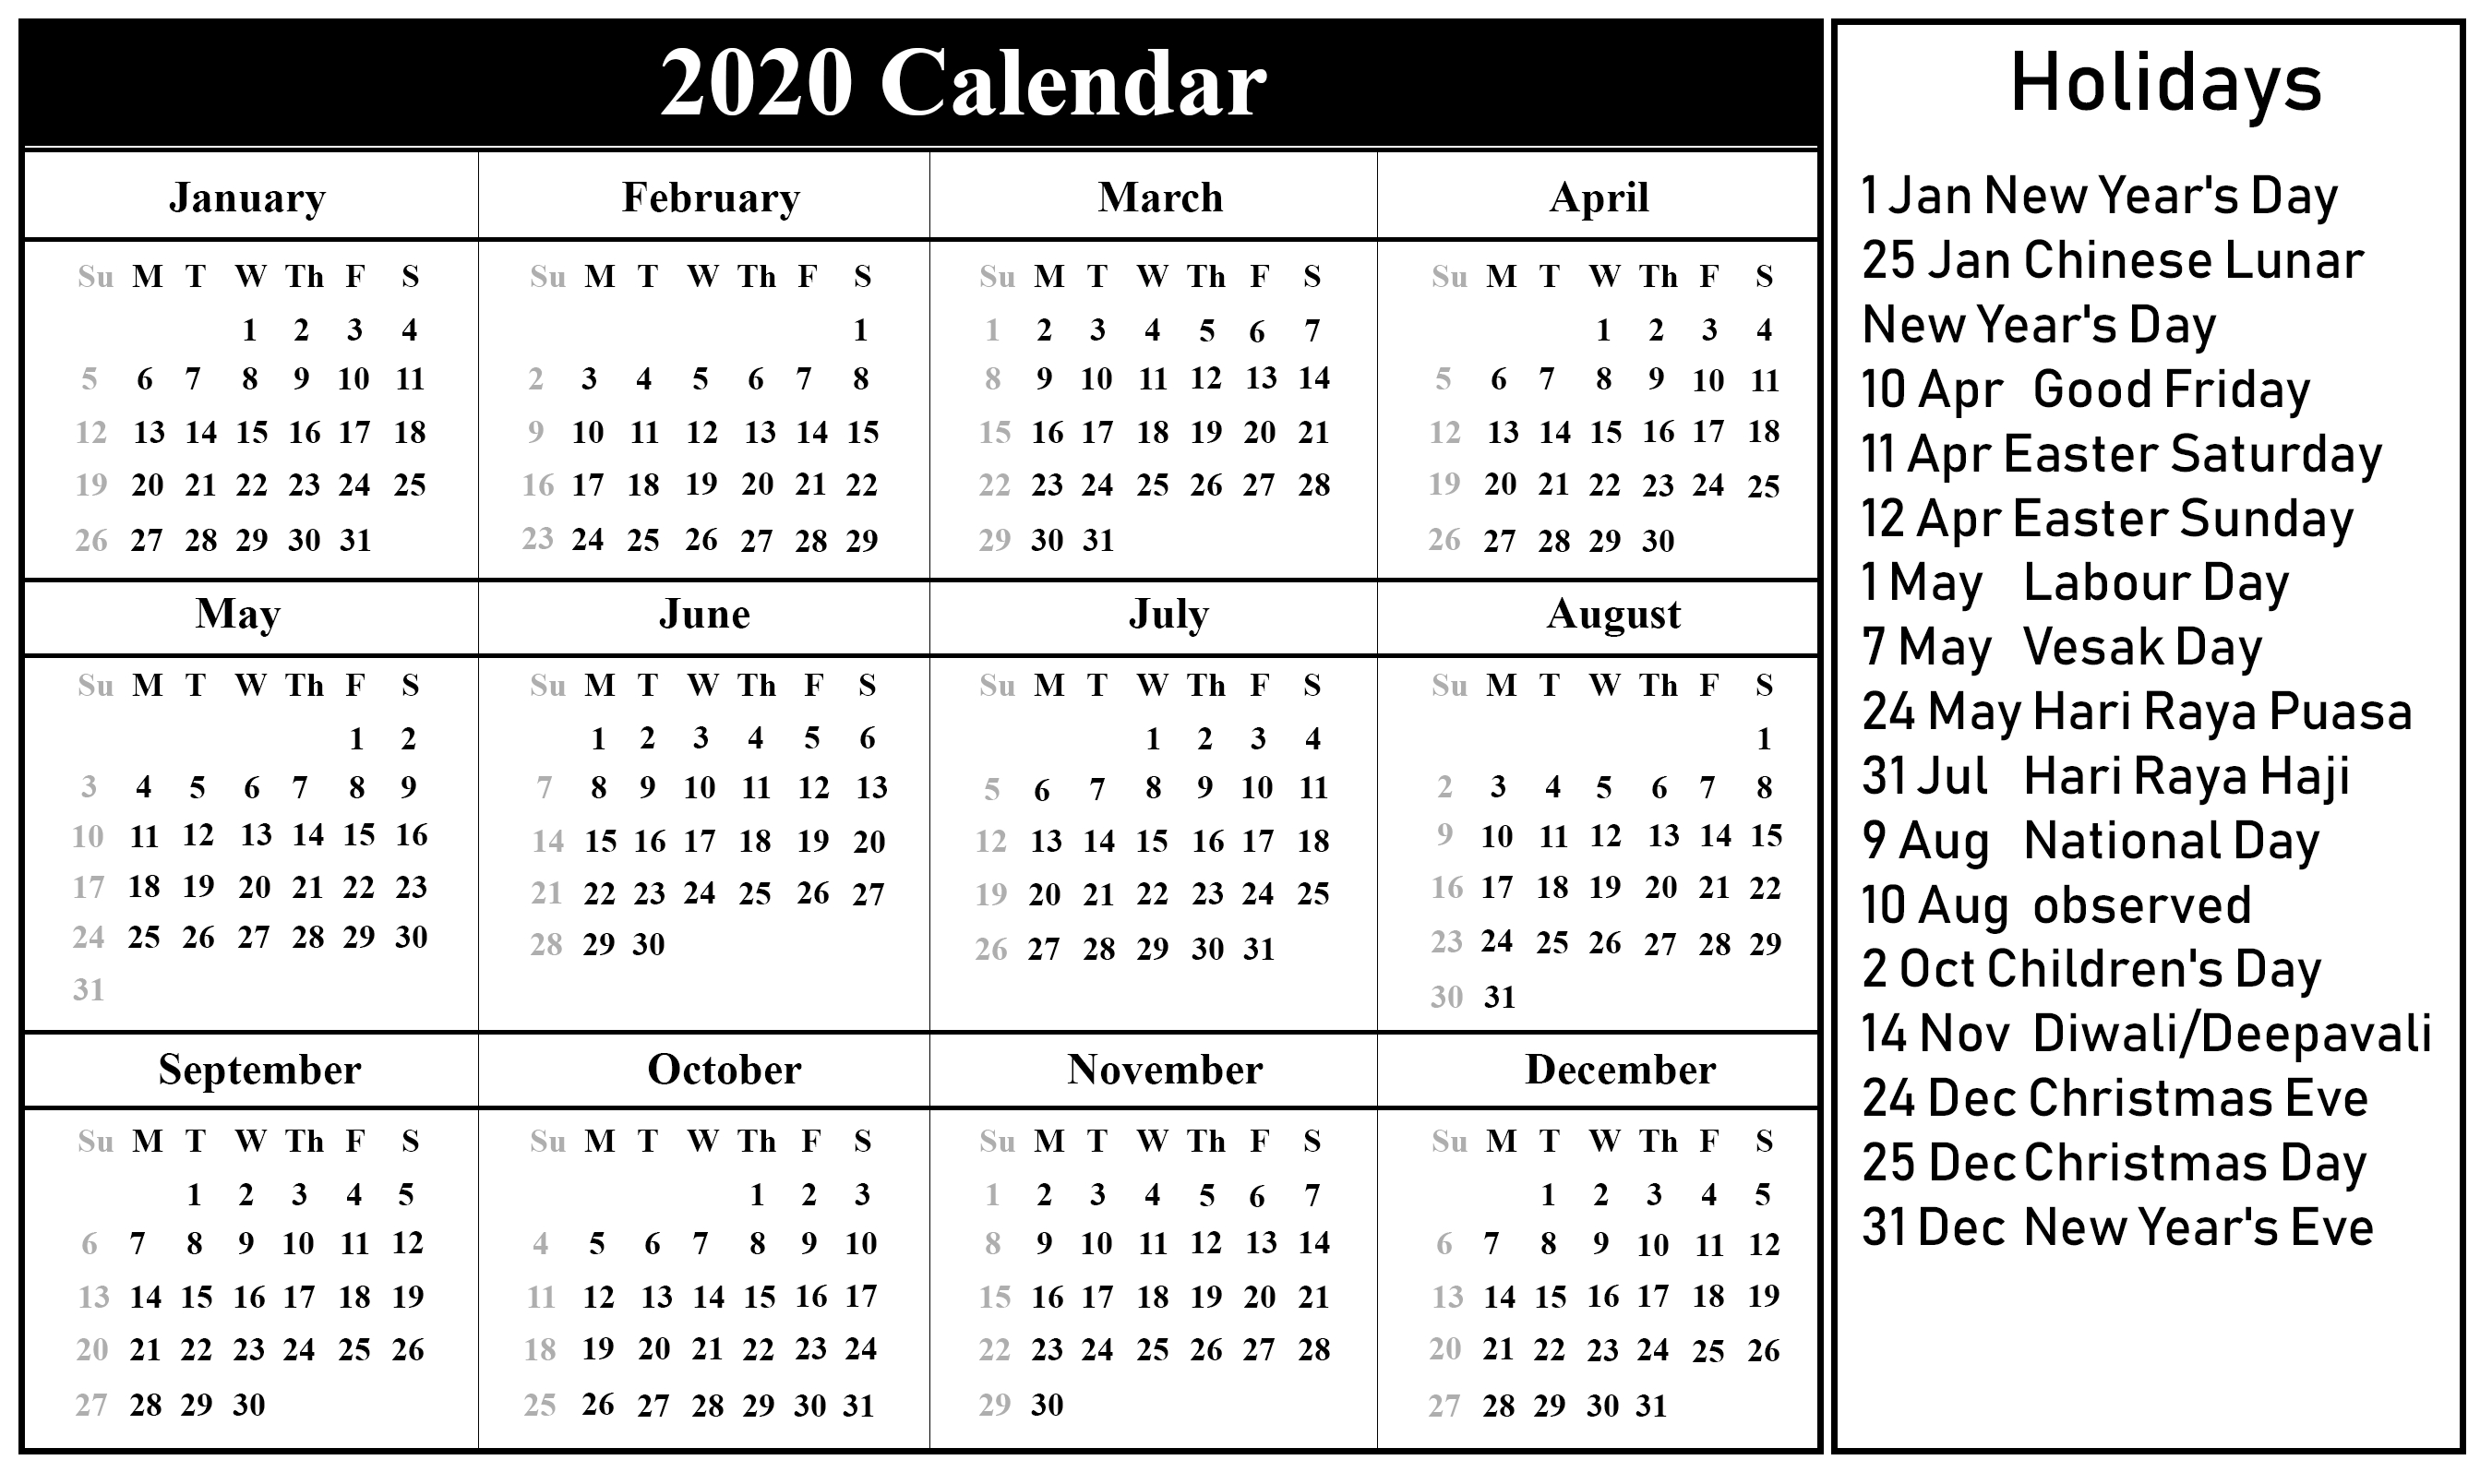 Printable 2020 Calendar With Holidays | Monthly Calendar-2020 Calendar With Holidays In India Pdf